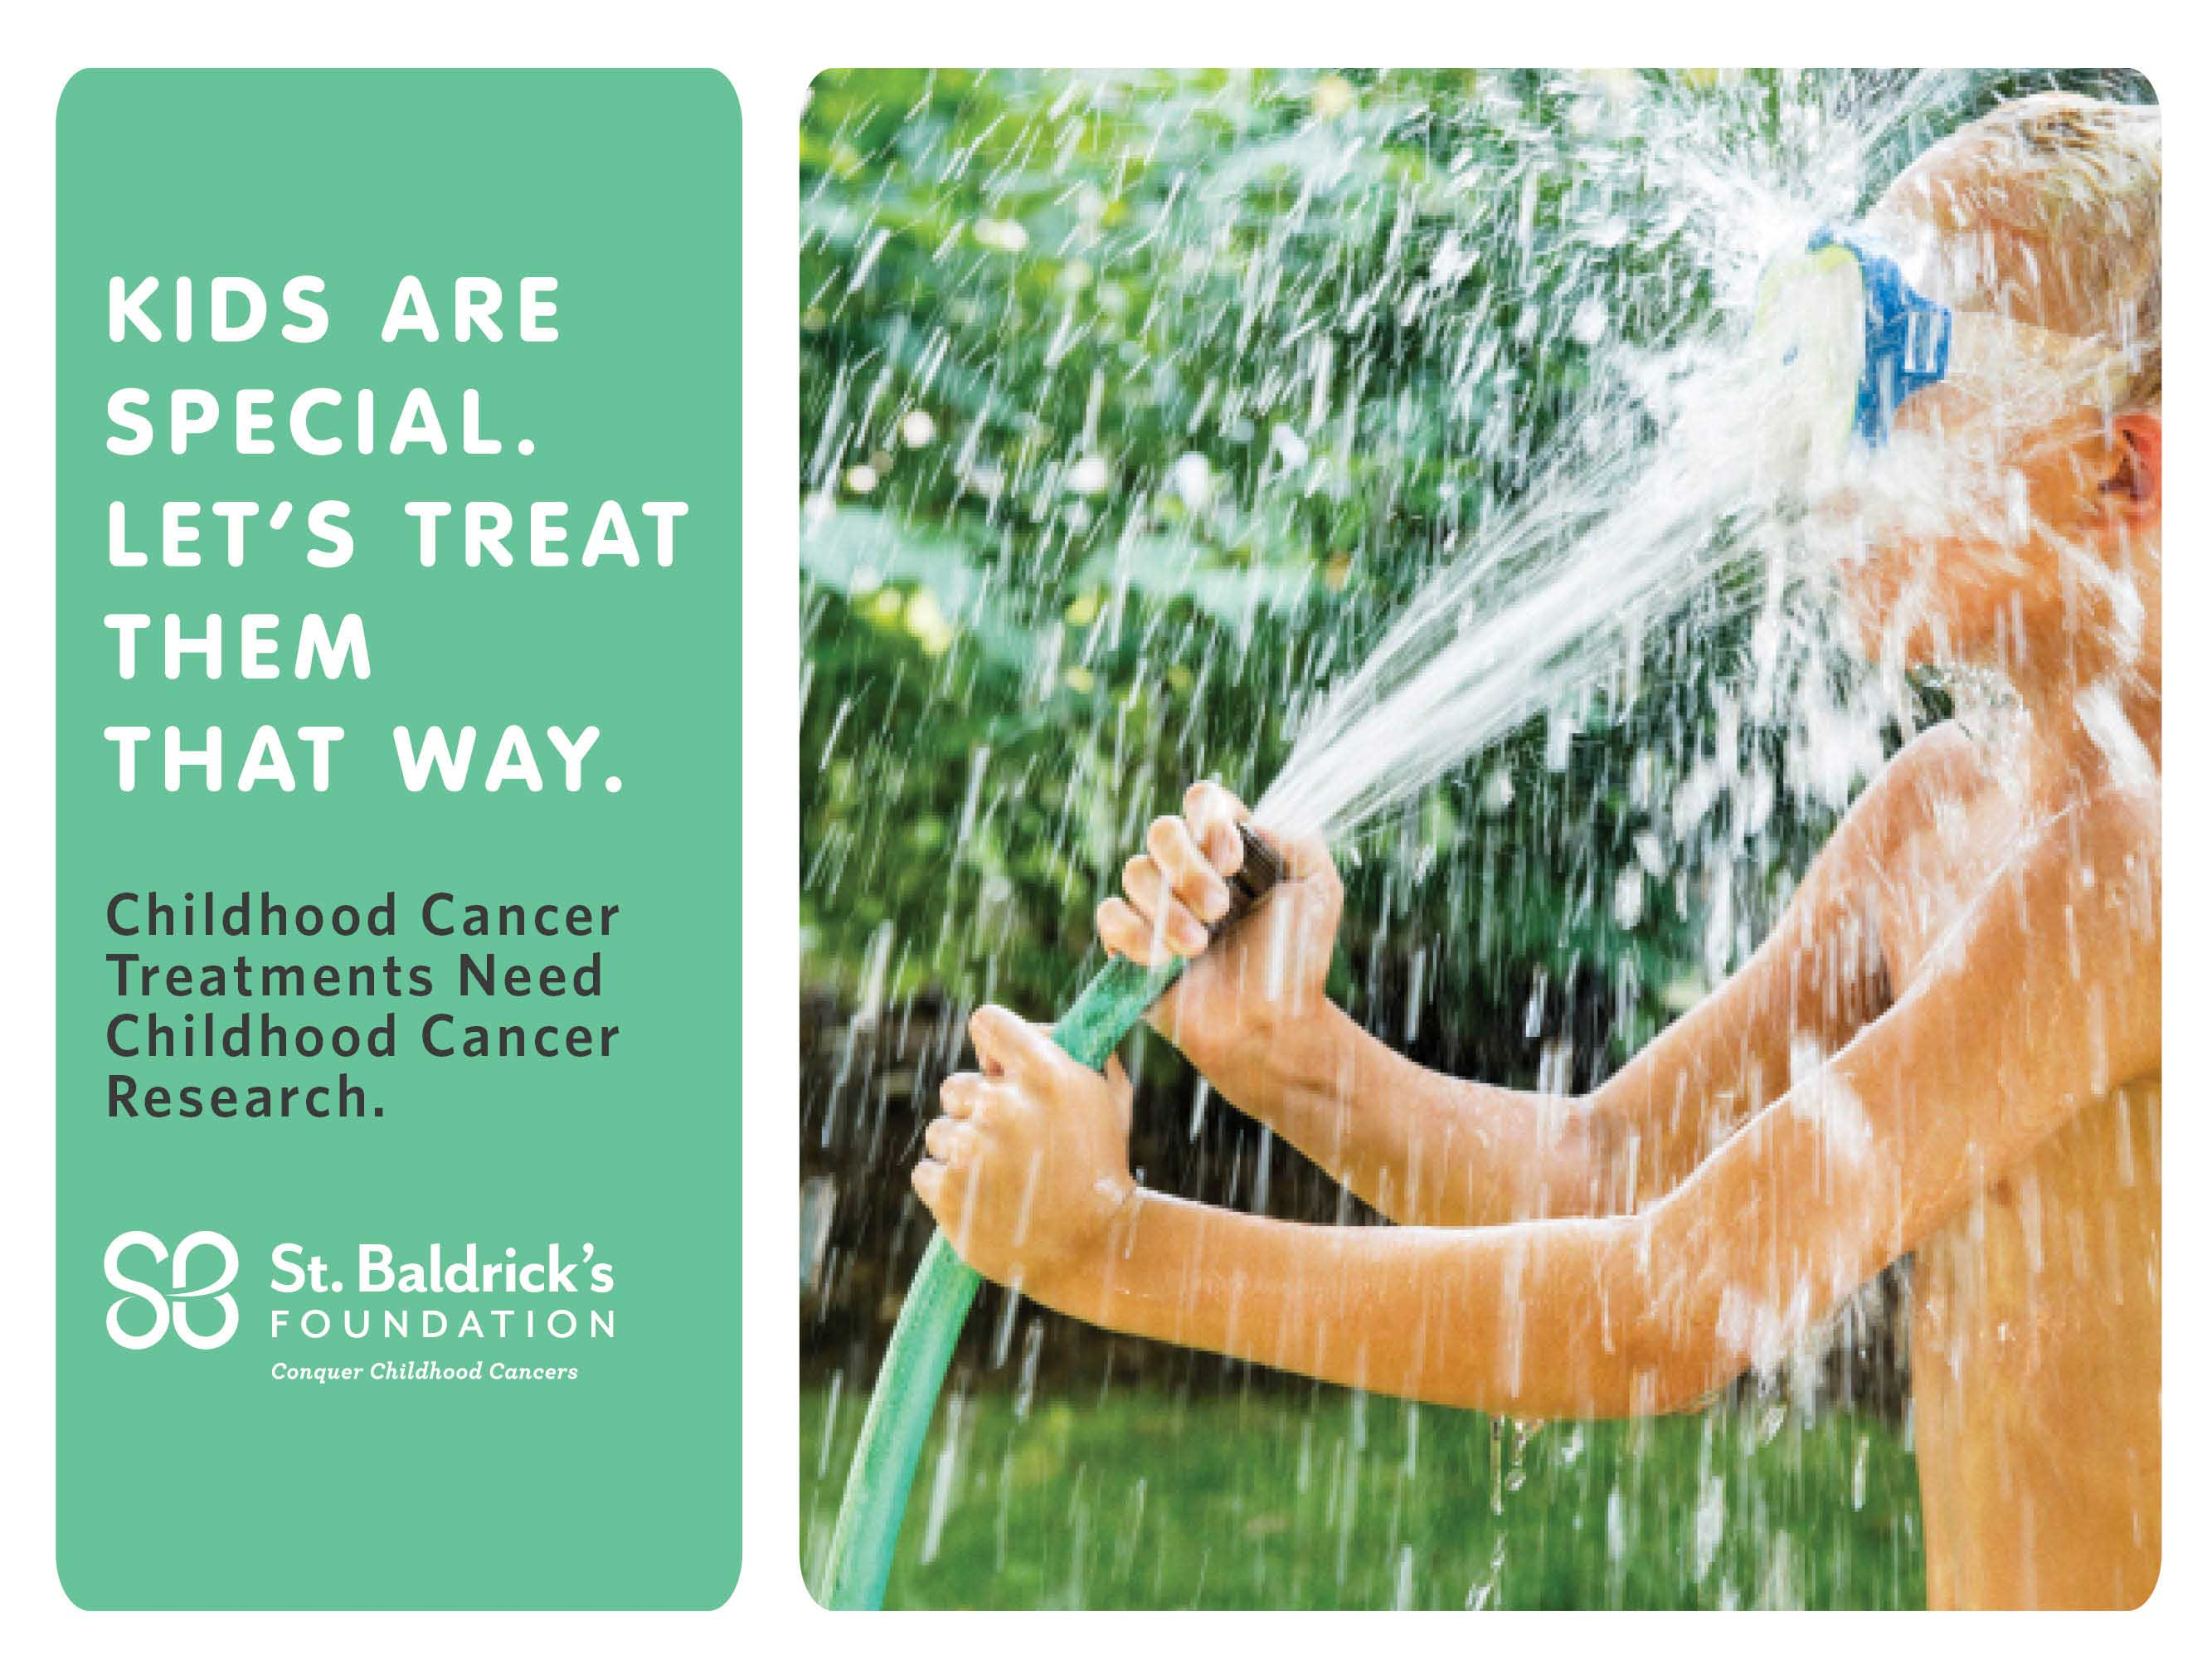 As adults we have the power to give kids happy childhoods free from cancer by helping to fund the best research worldwide. Donate today at StBaldricks.org. #KidsAreSpecial